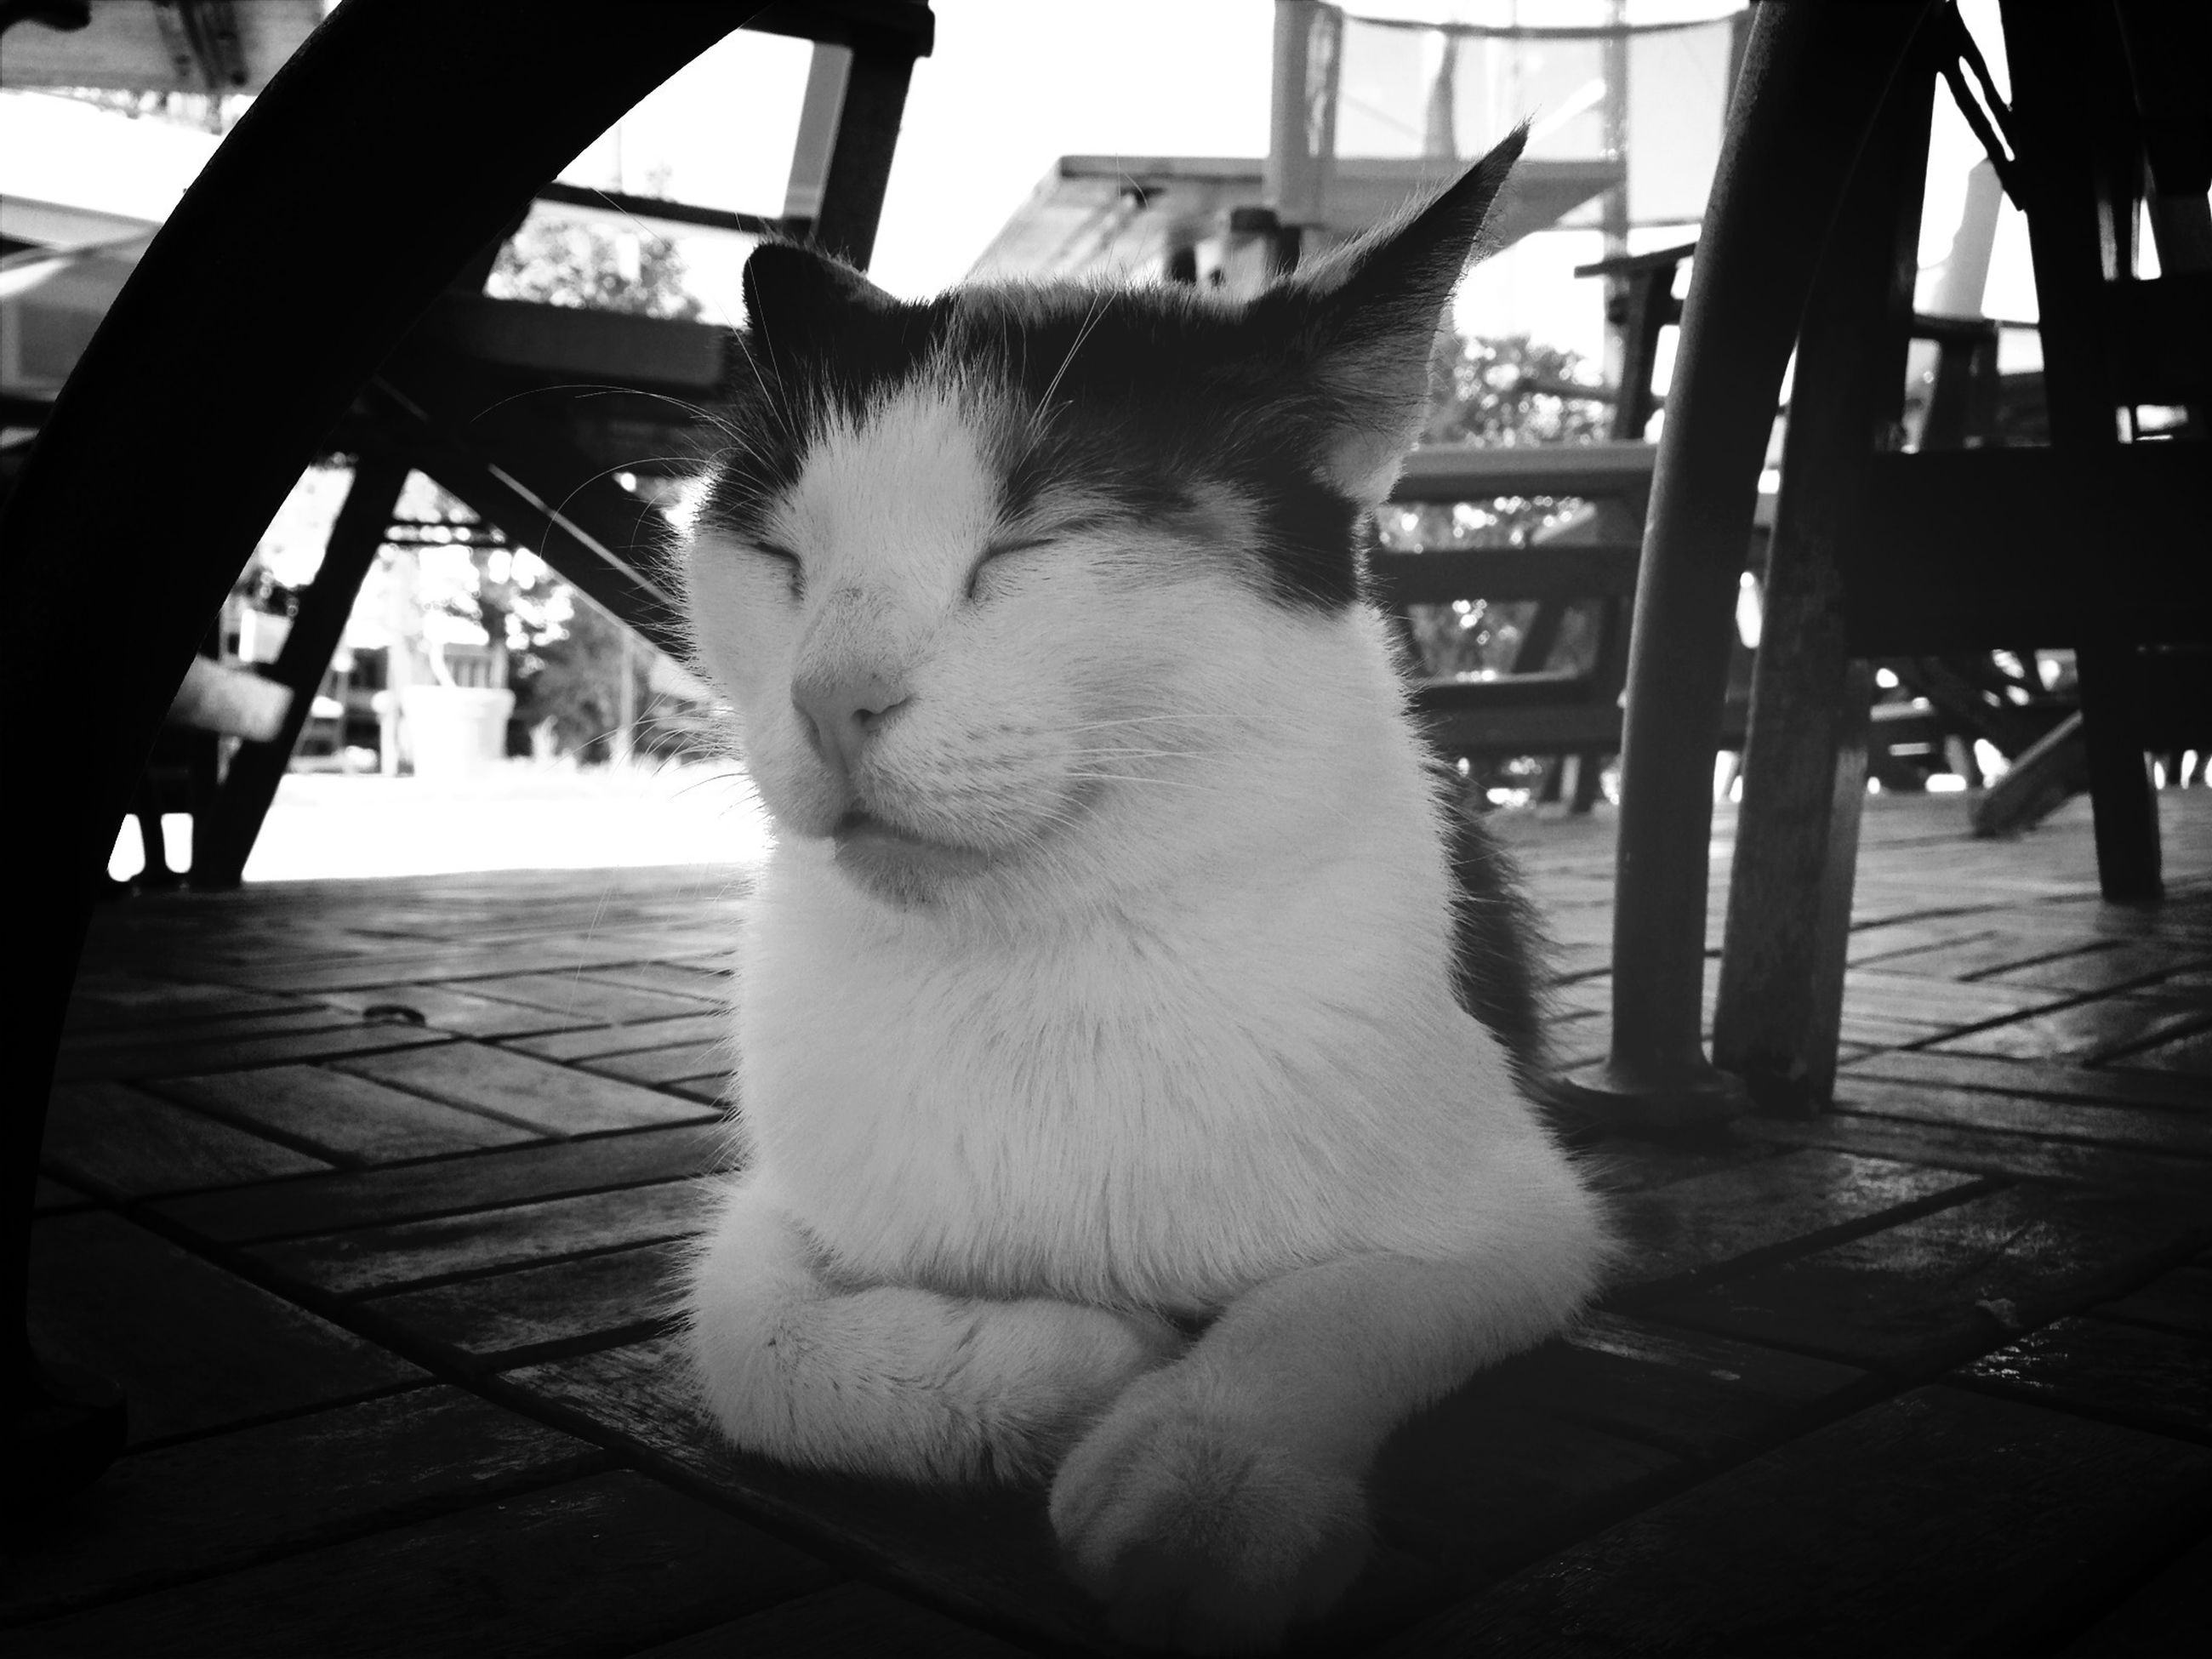 domestic animals, domestic cat, animal themes, one animal, pets, mammal, cat, feline, indoors, whisker, sitting, relaxation, wood - material, close-up, chair, table, sunlight, looking away, no people, home interior